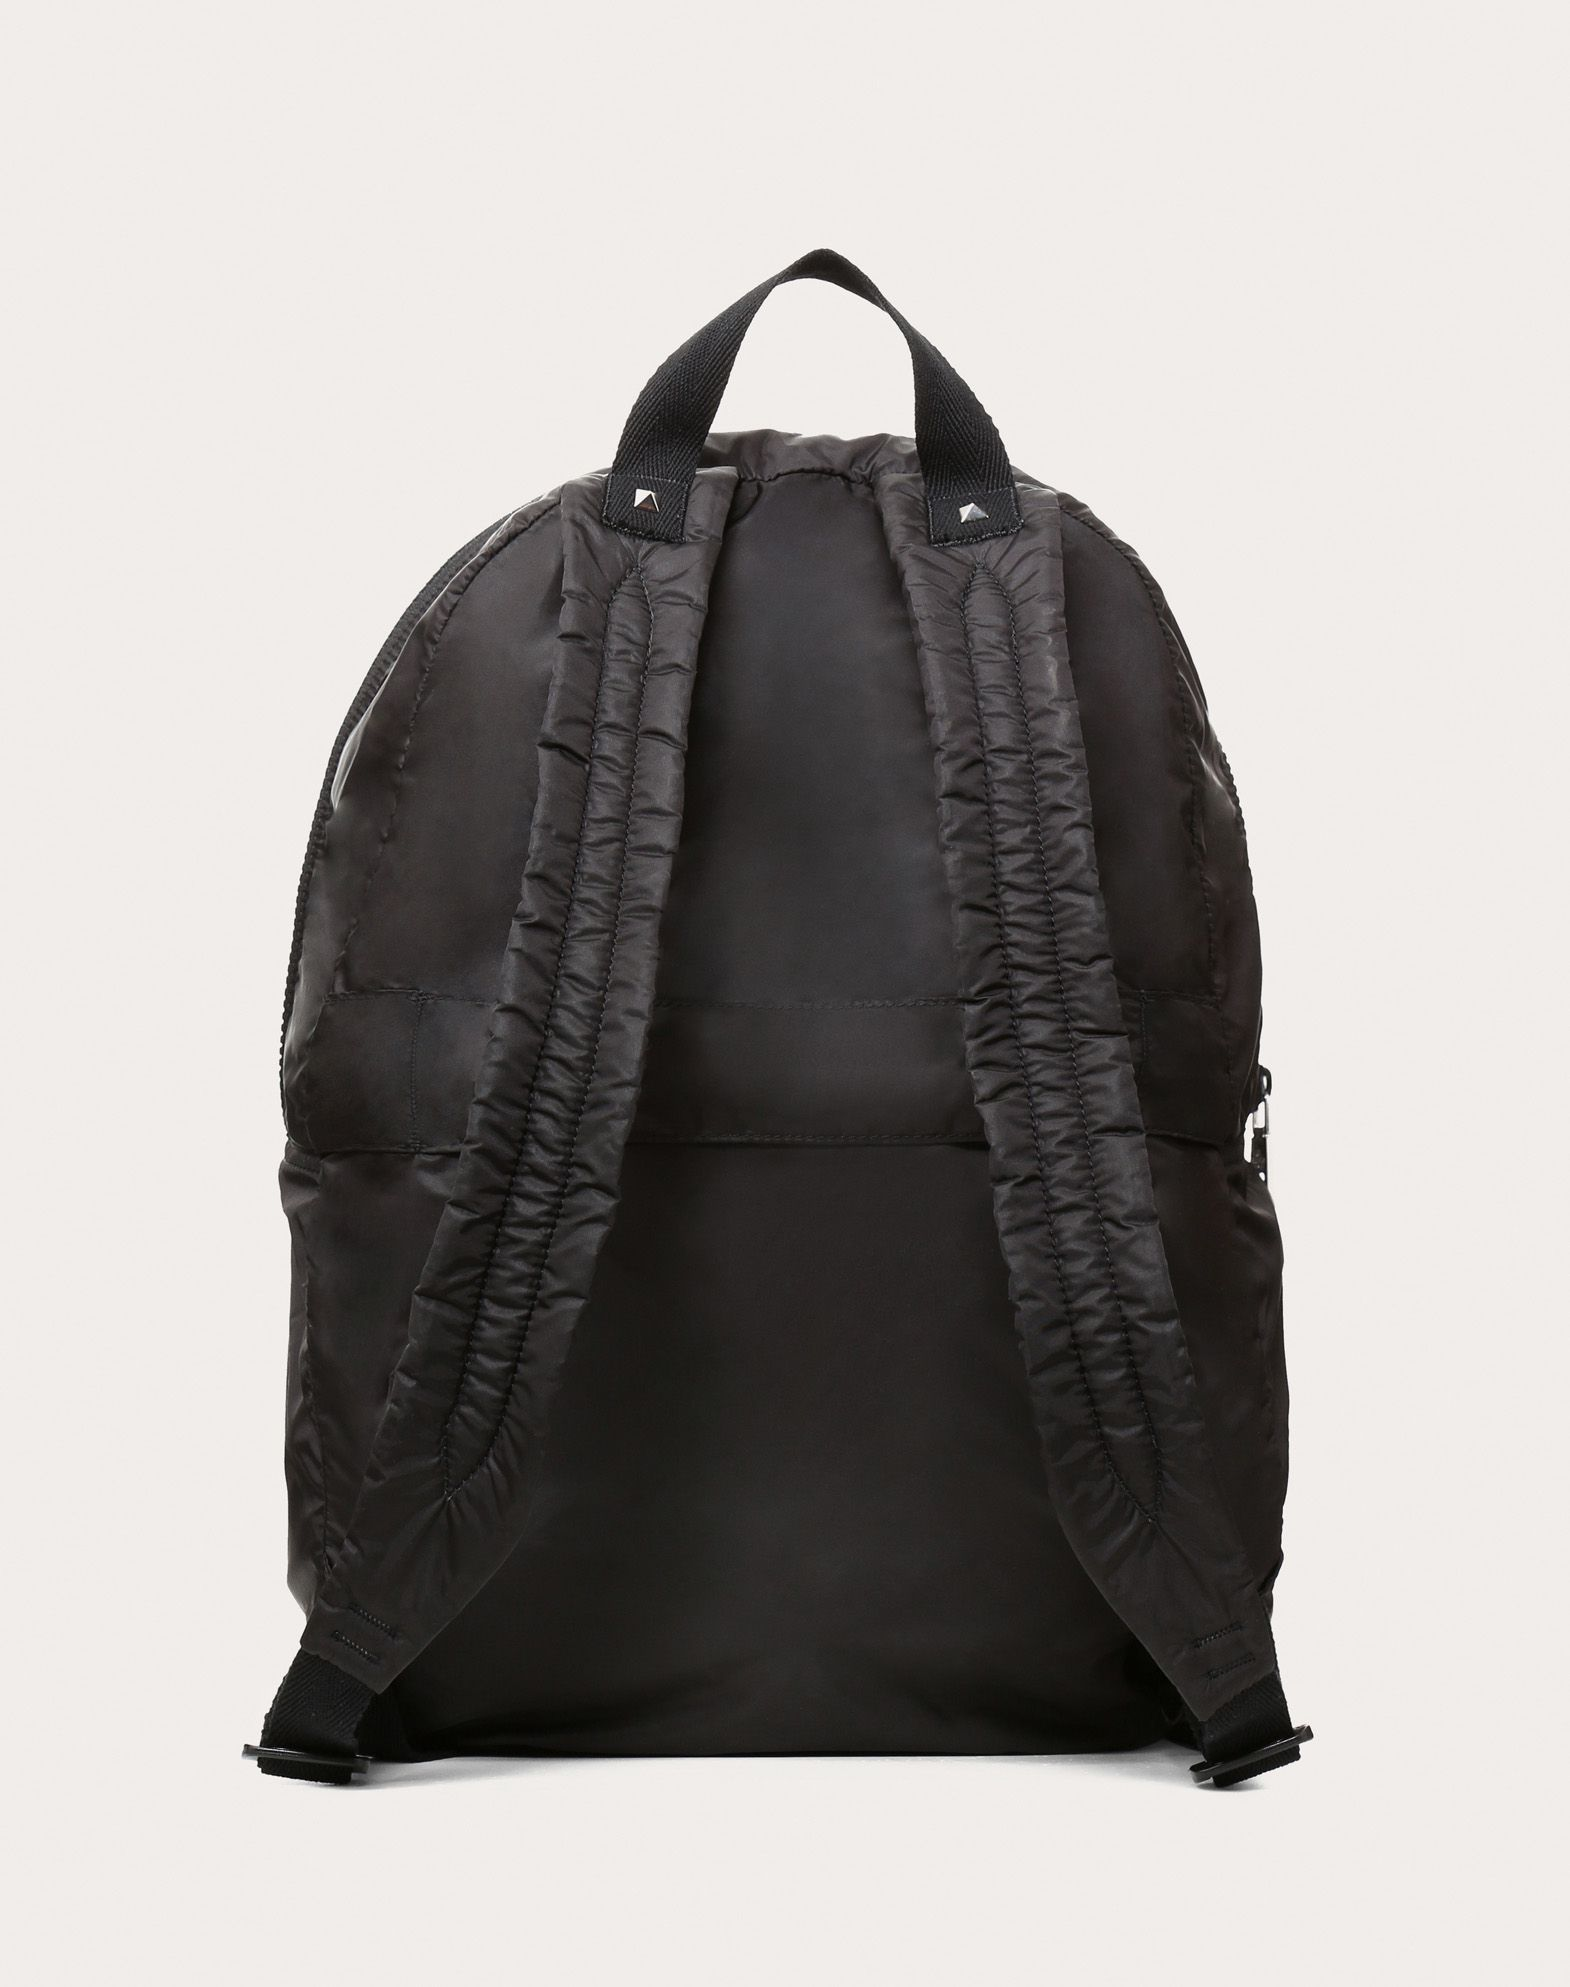 VALENTINO GARAVANI UOMO VLTN backpack Backpack U d